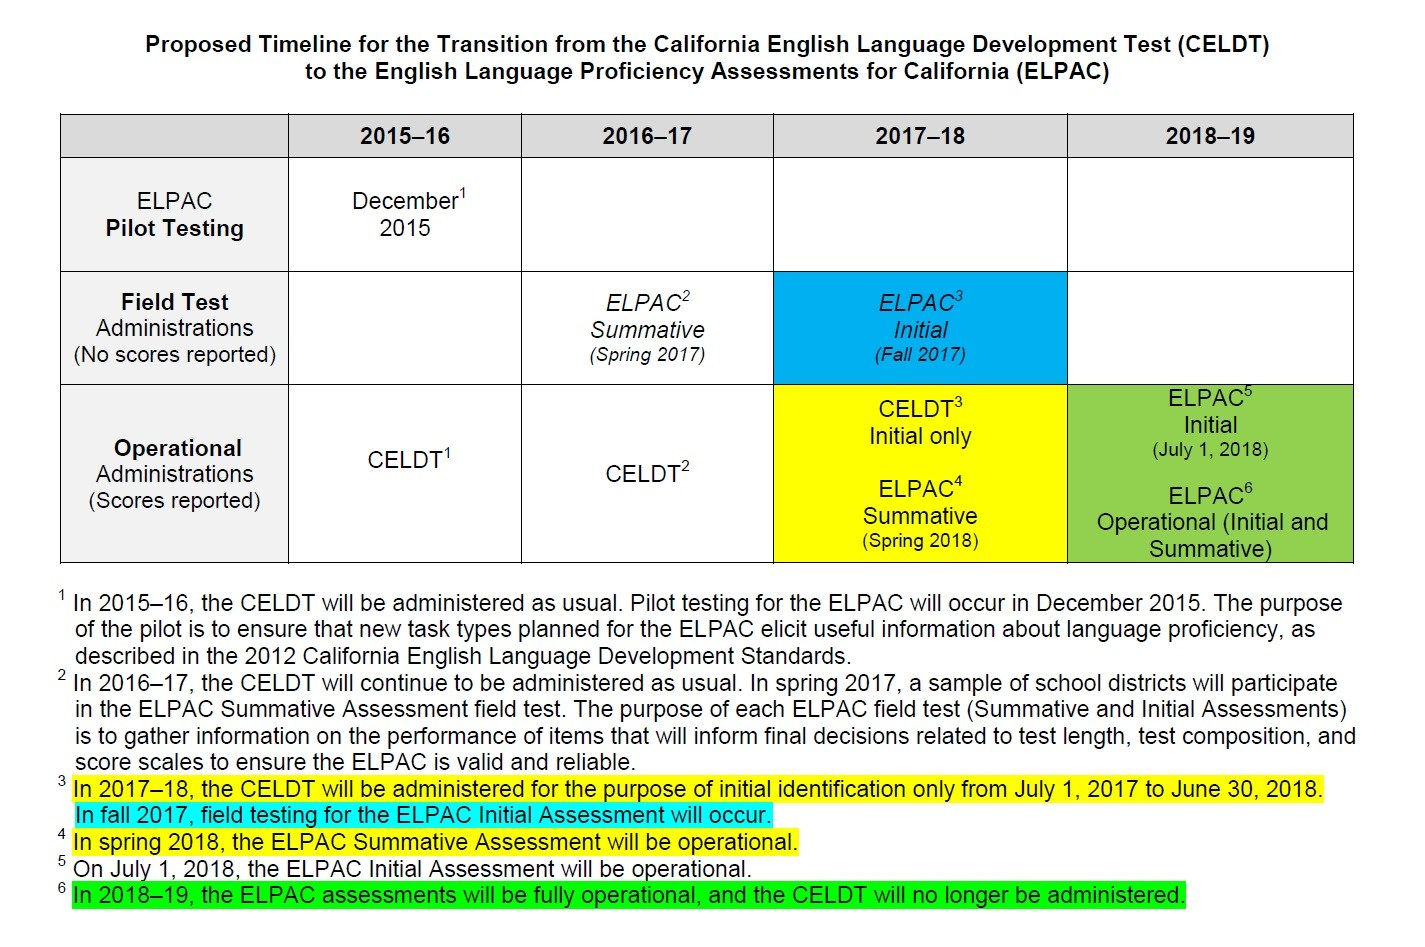 Proposed Timeline for Transition from CALDT to ELPAC